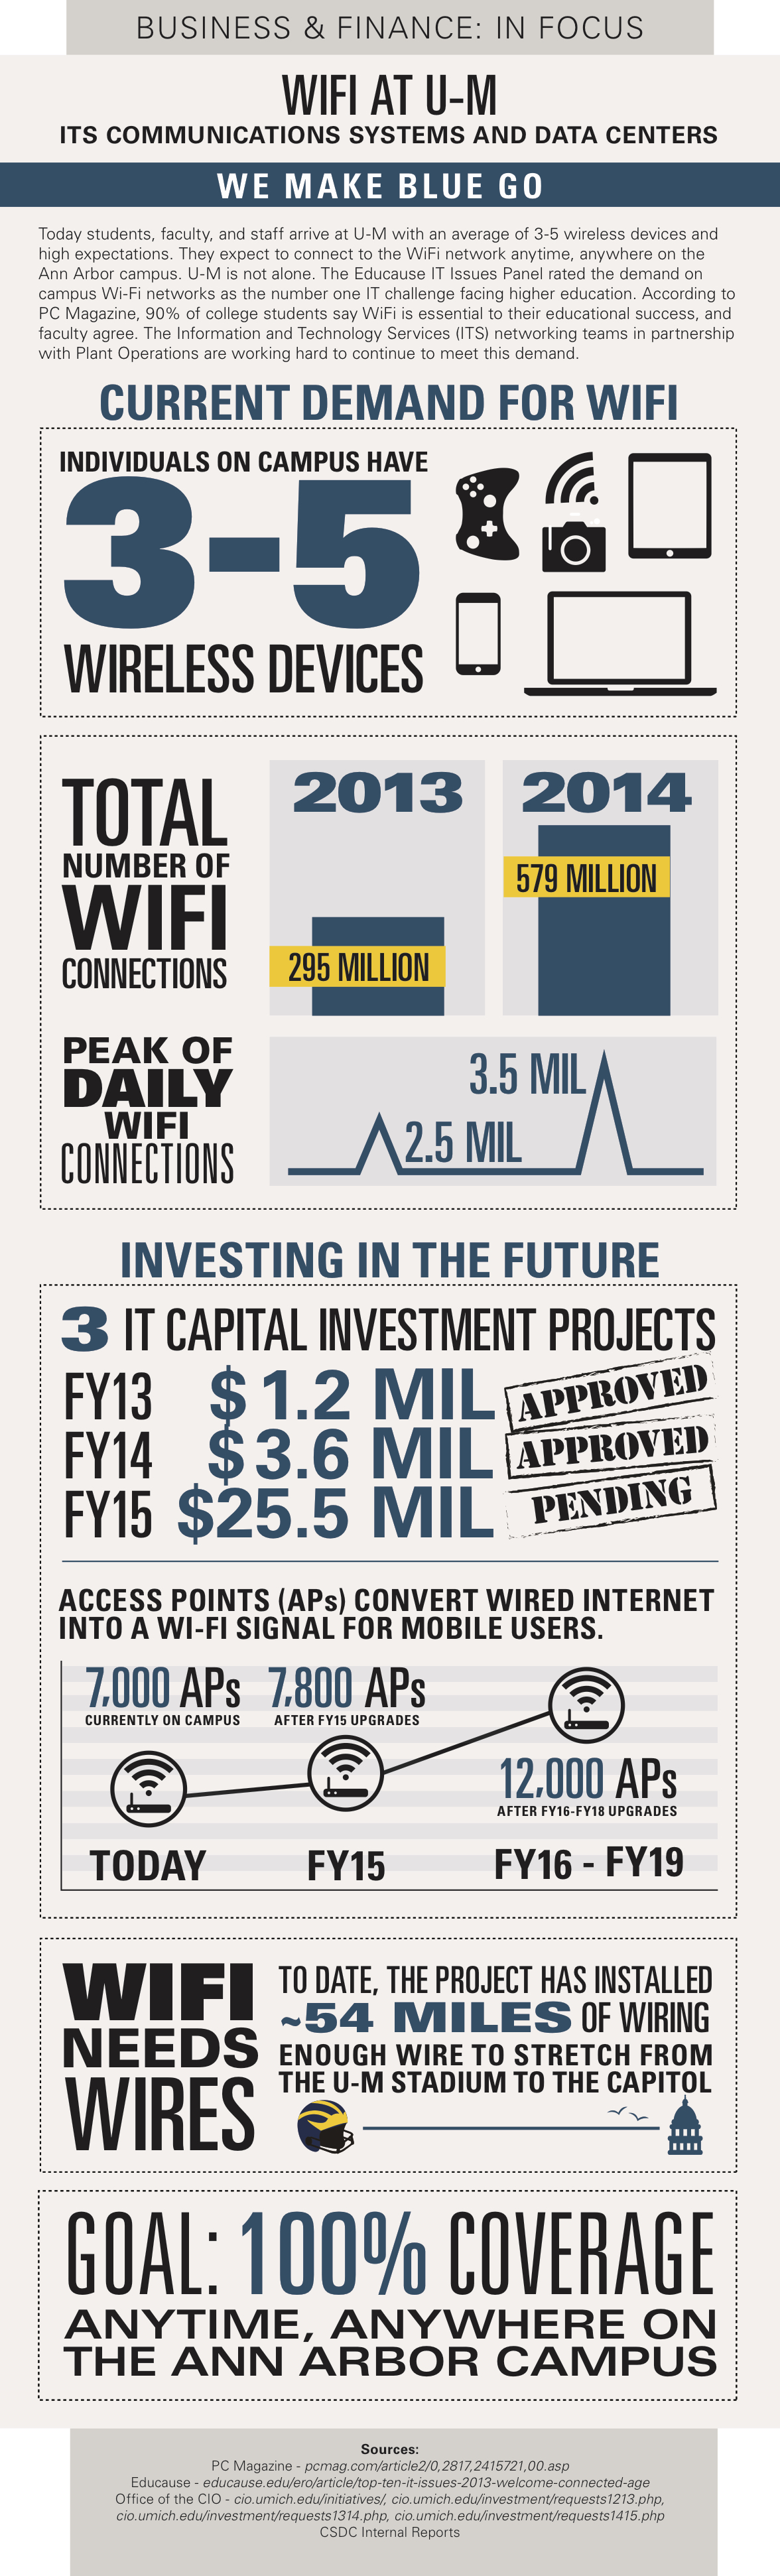 bf_march2015wifiinfographic